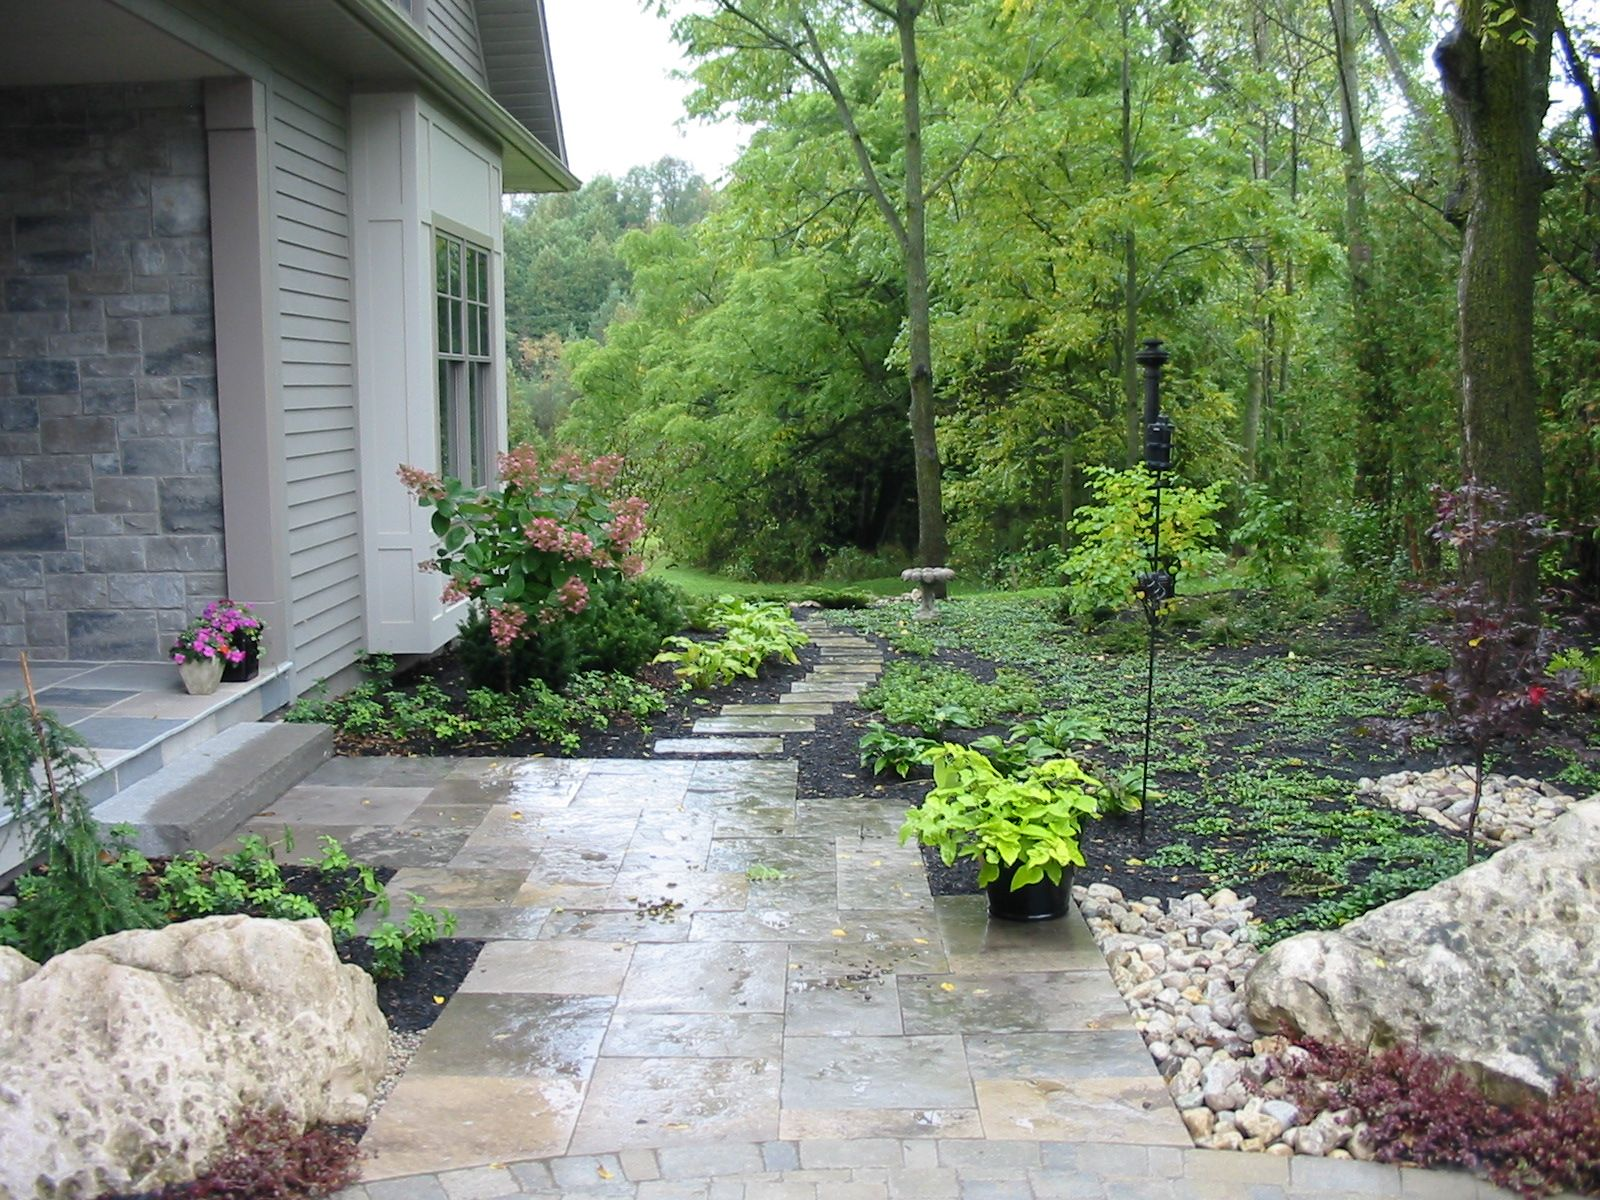 Front Garden Contact Me For Landscape Construction In The Guelph Area